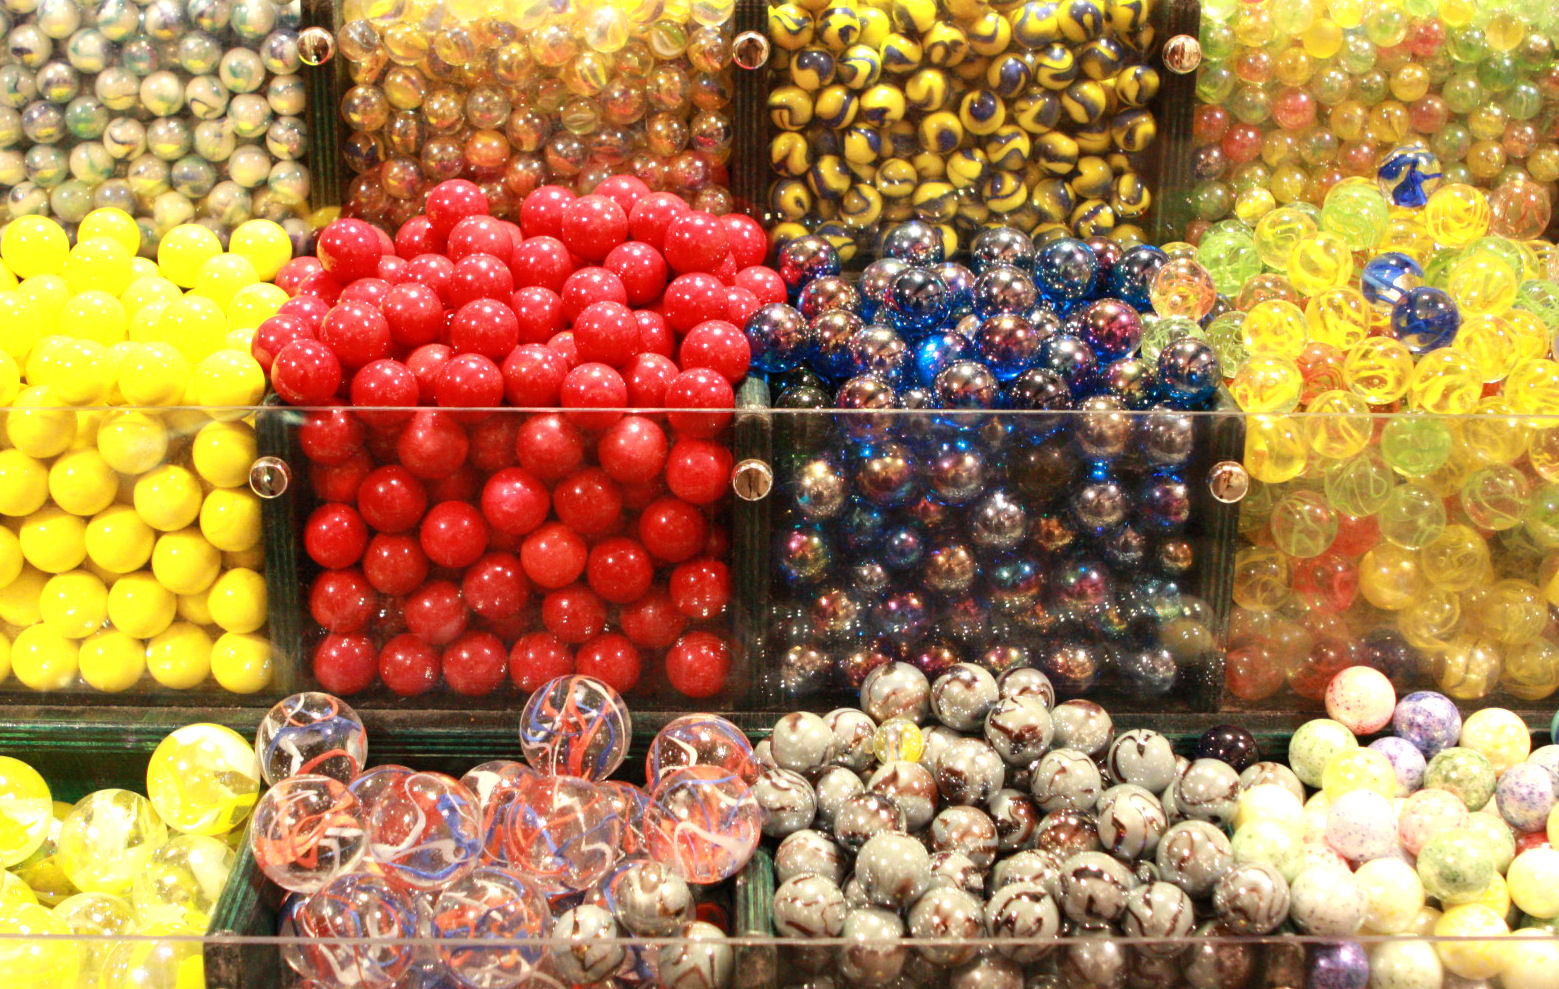 A hundred photo opportunities at the  House of Marbles in Bovey Tracey.